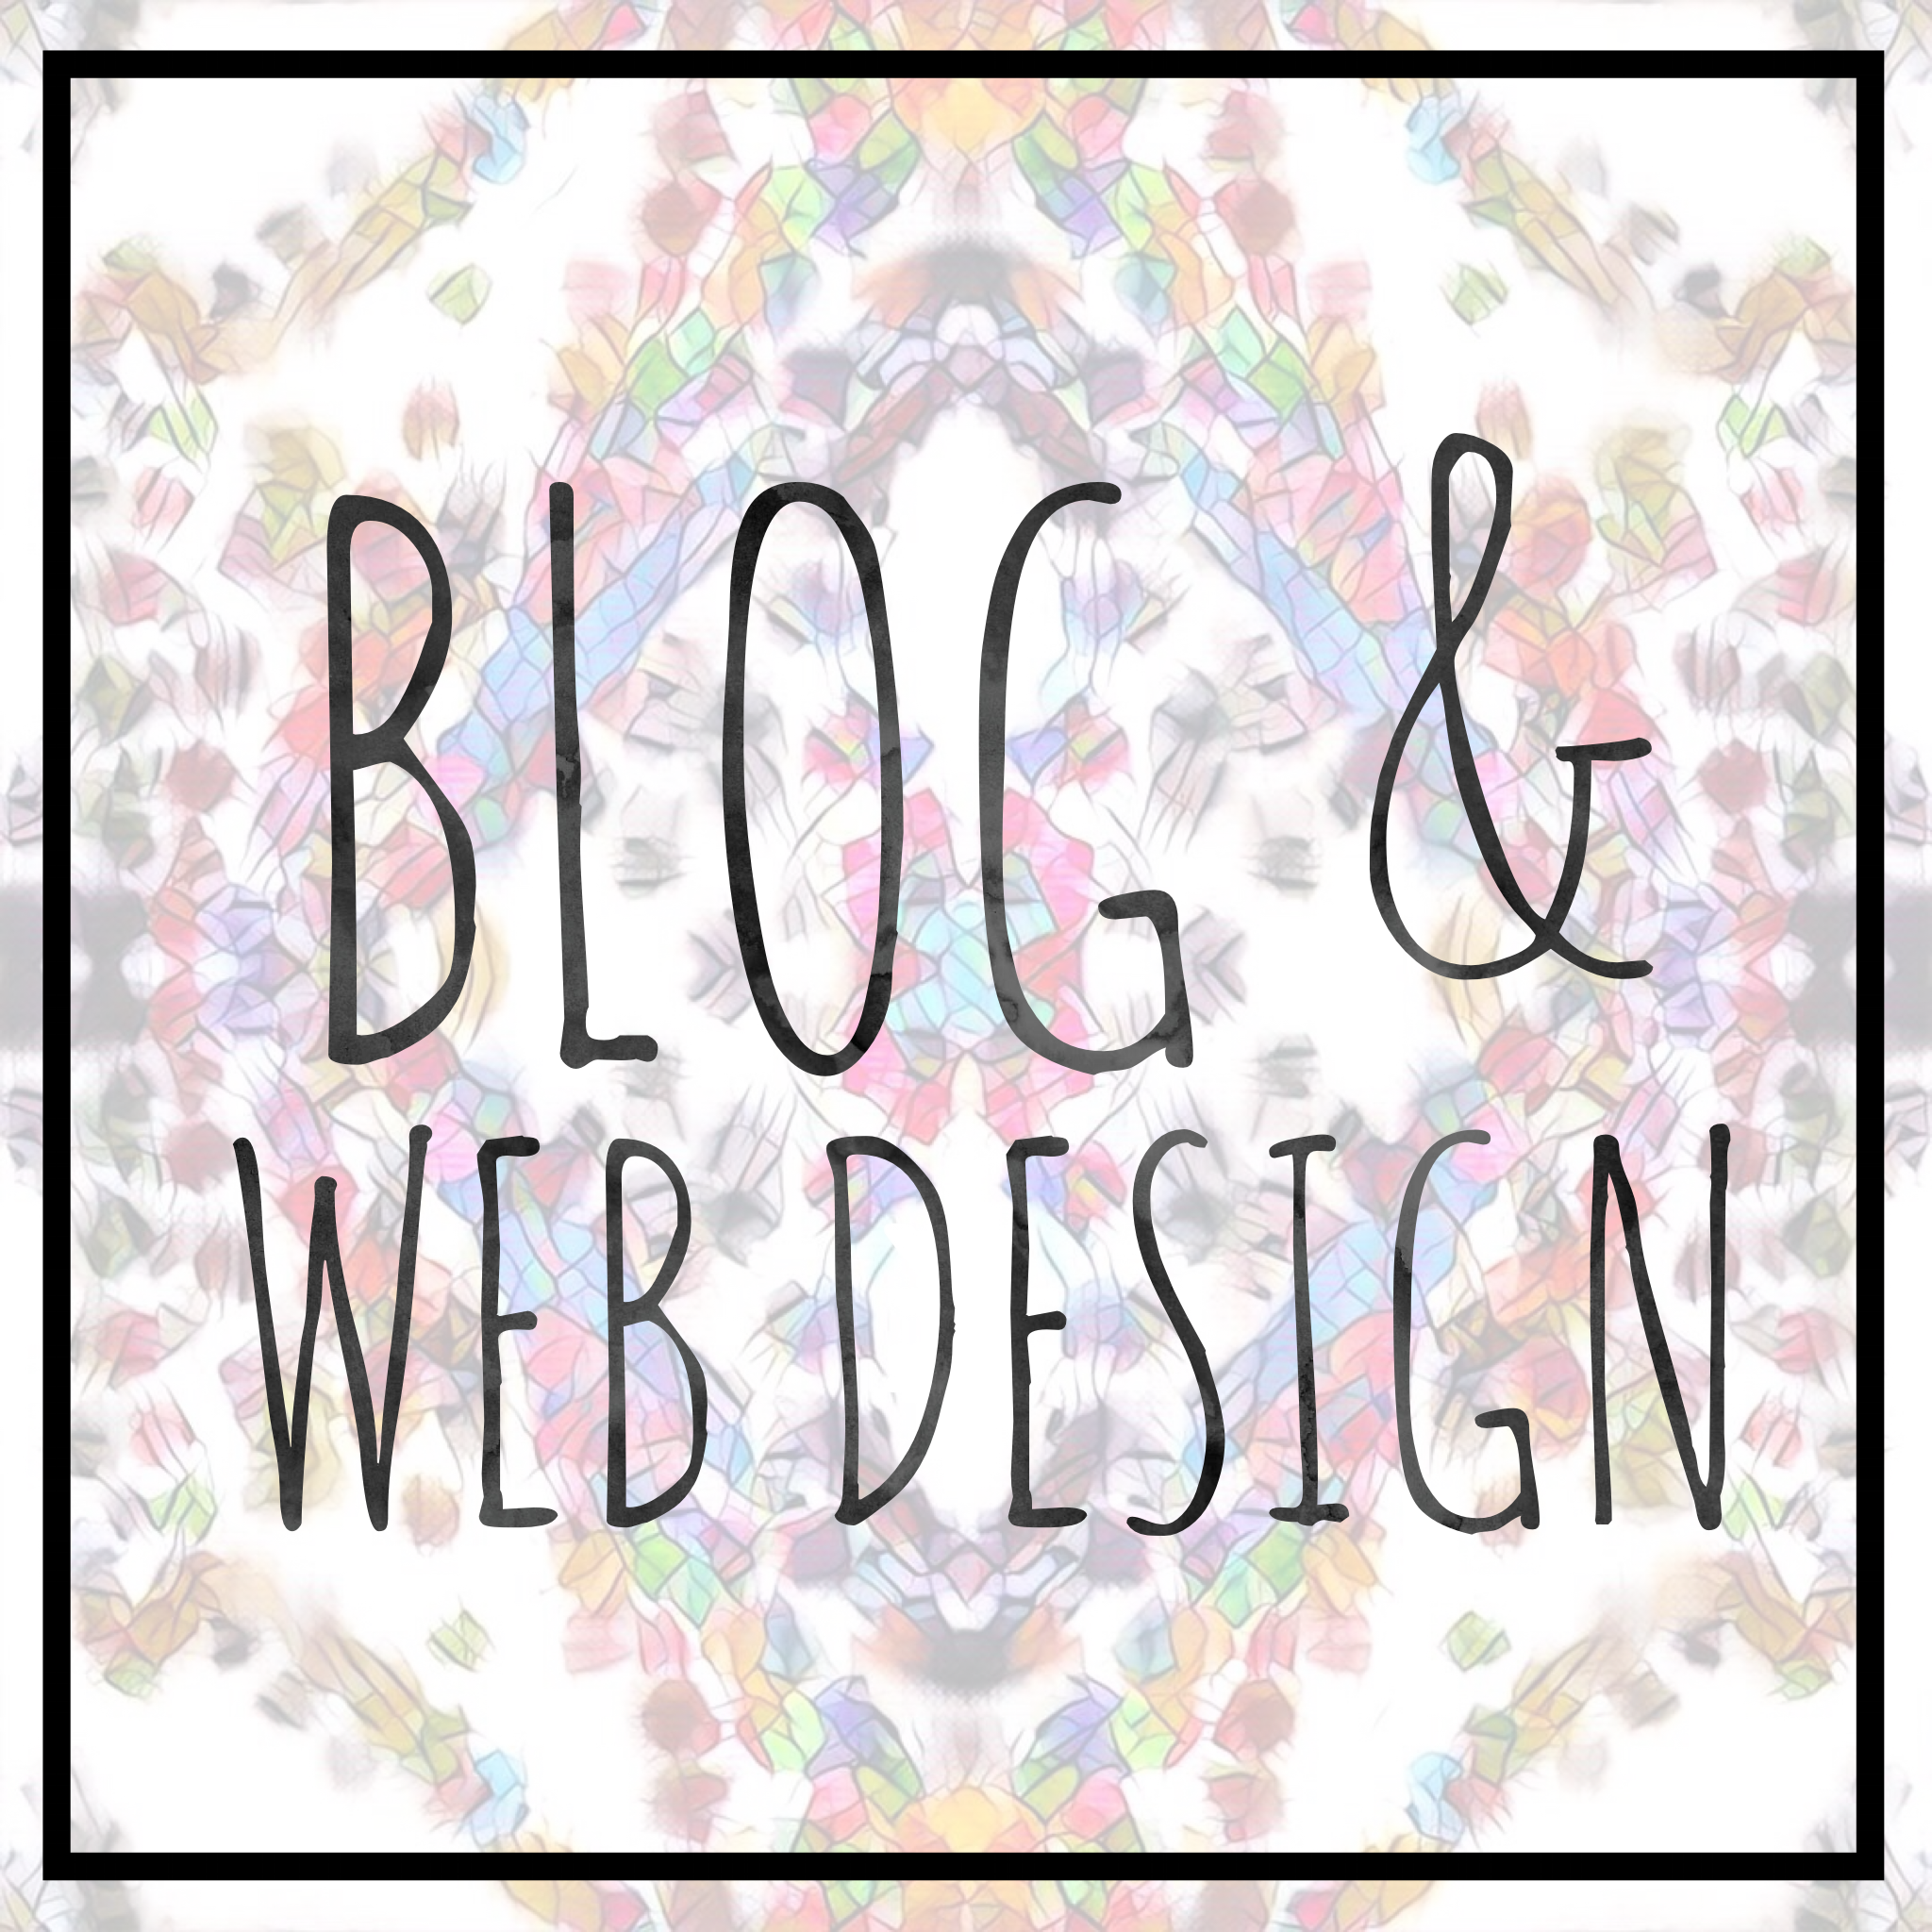 Blog and Web Design by Dr. Liz Musil